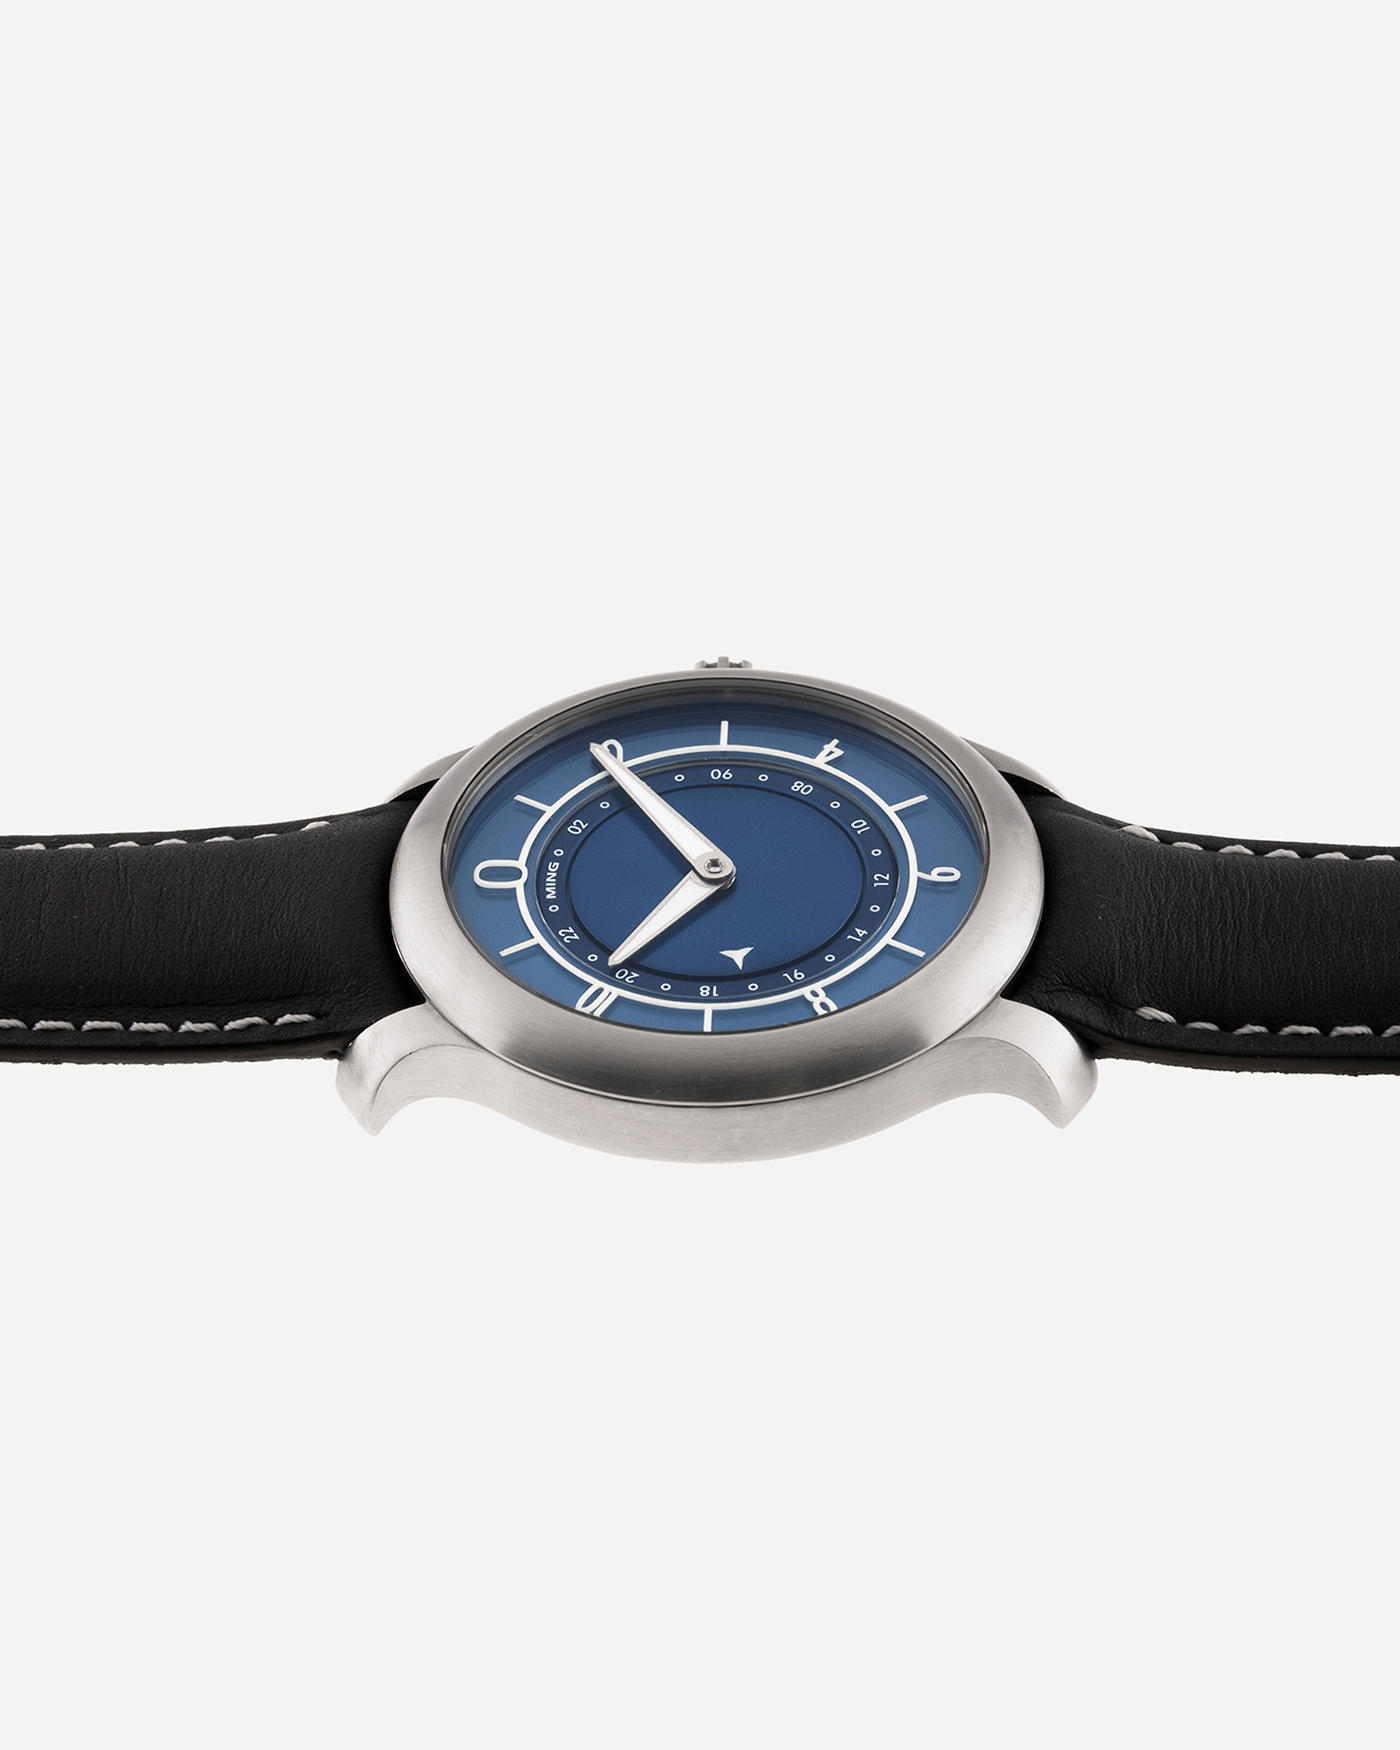 Brand: Ming Year: 2018 Model: 17.03 Material: Grade 2 Titanium Movement: Self-Winding Sellita SW 330-1 Case Diameter: 38mm Strap: Jean Rousseau Blue Grey Smooth Calf for MING